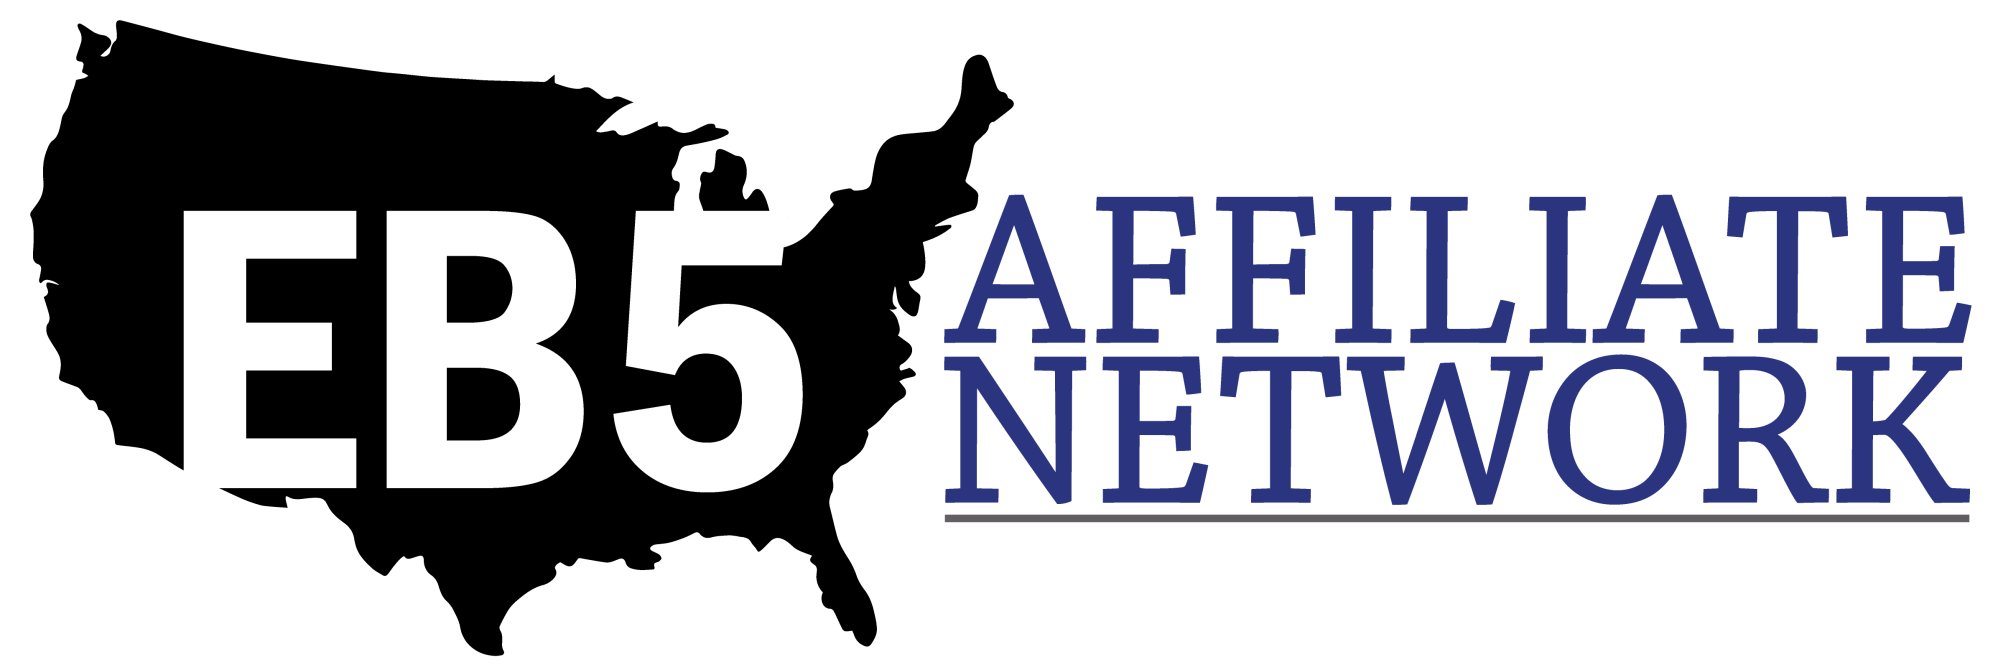 hight resolution of eb5 affiliate network